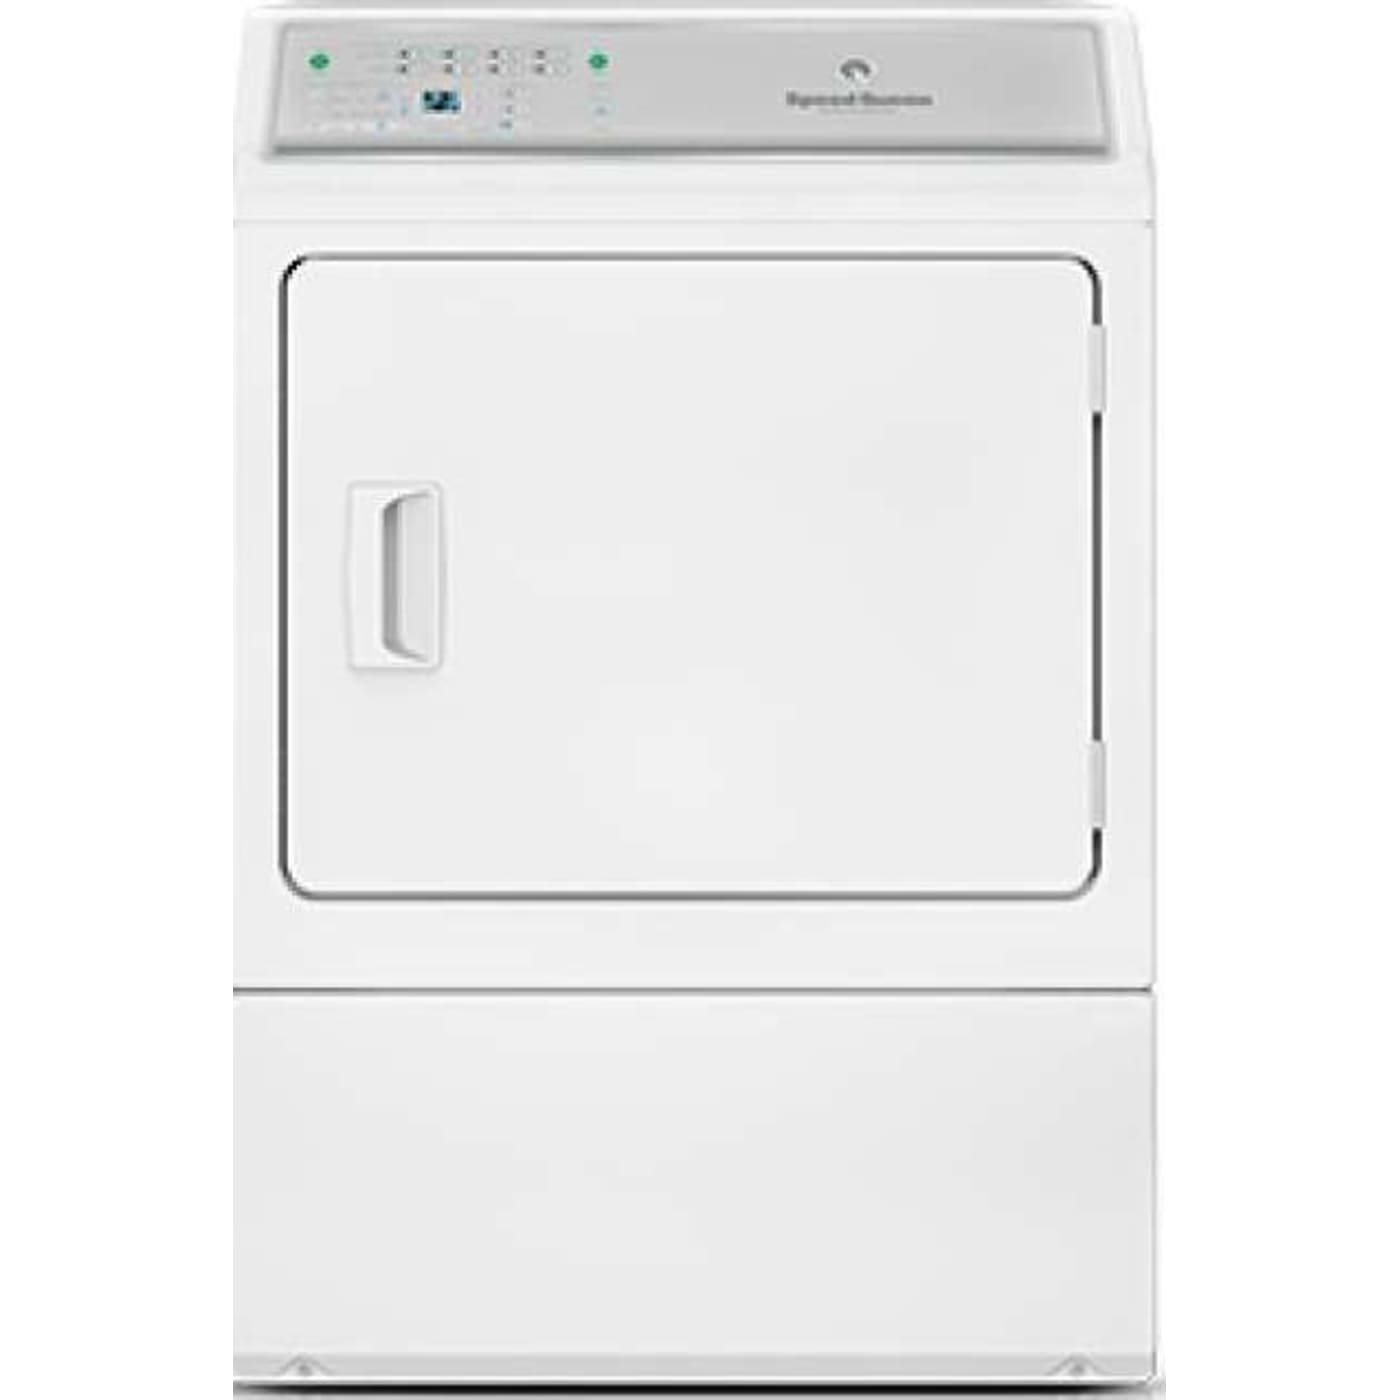 adge9bgs113tw01 by speed queen natural gas dryers goedekers com